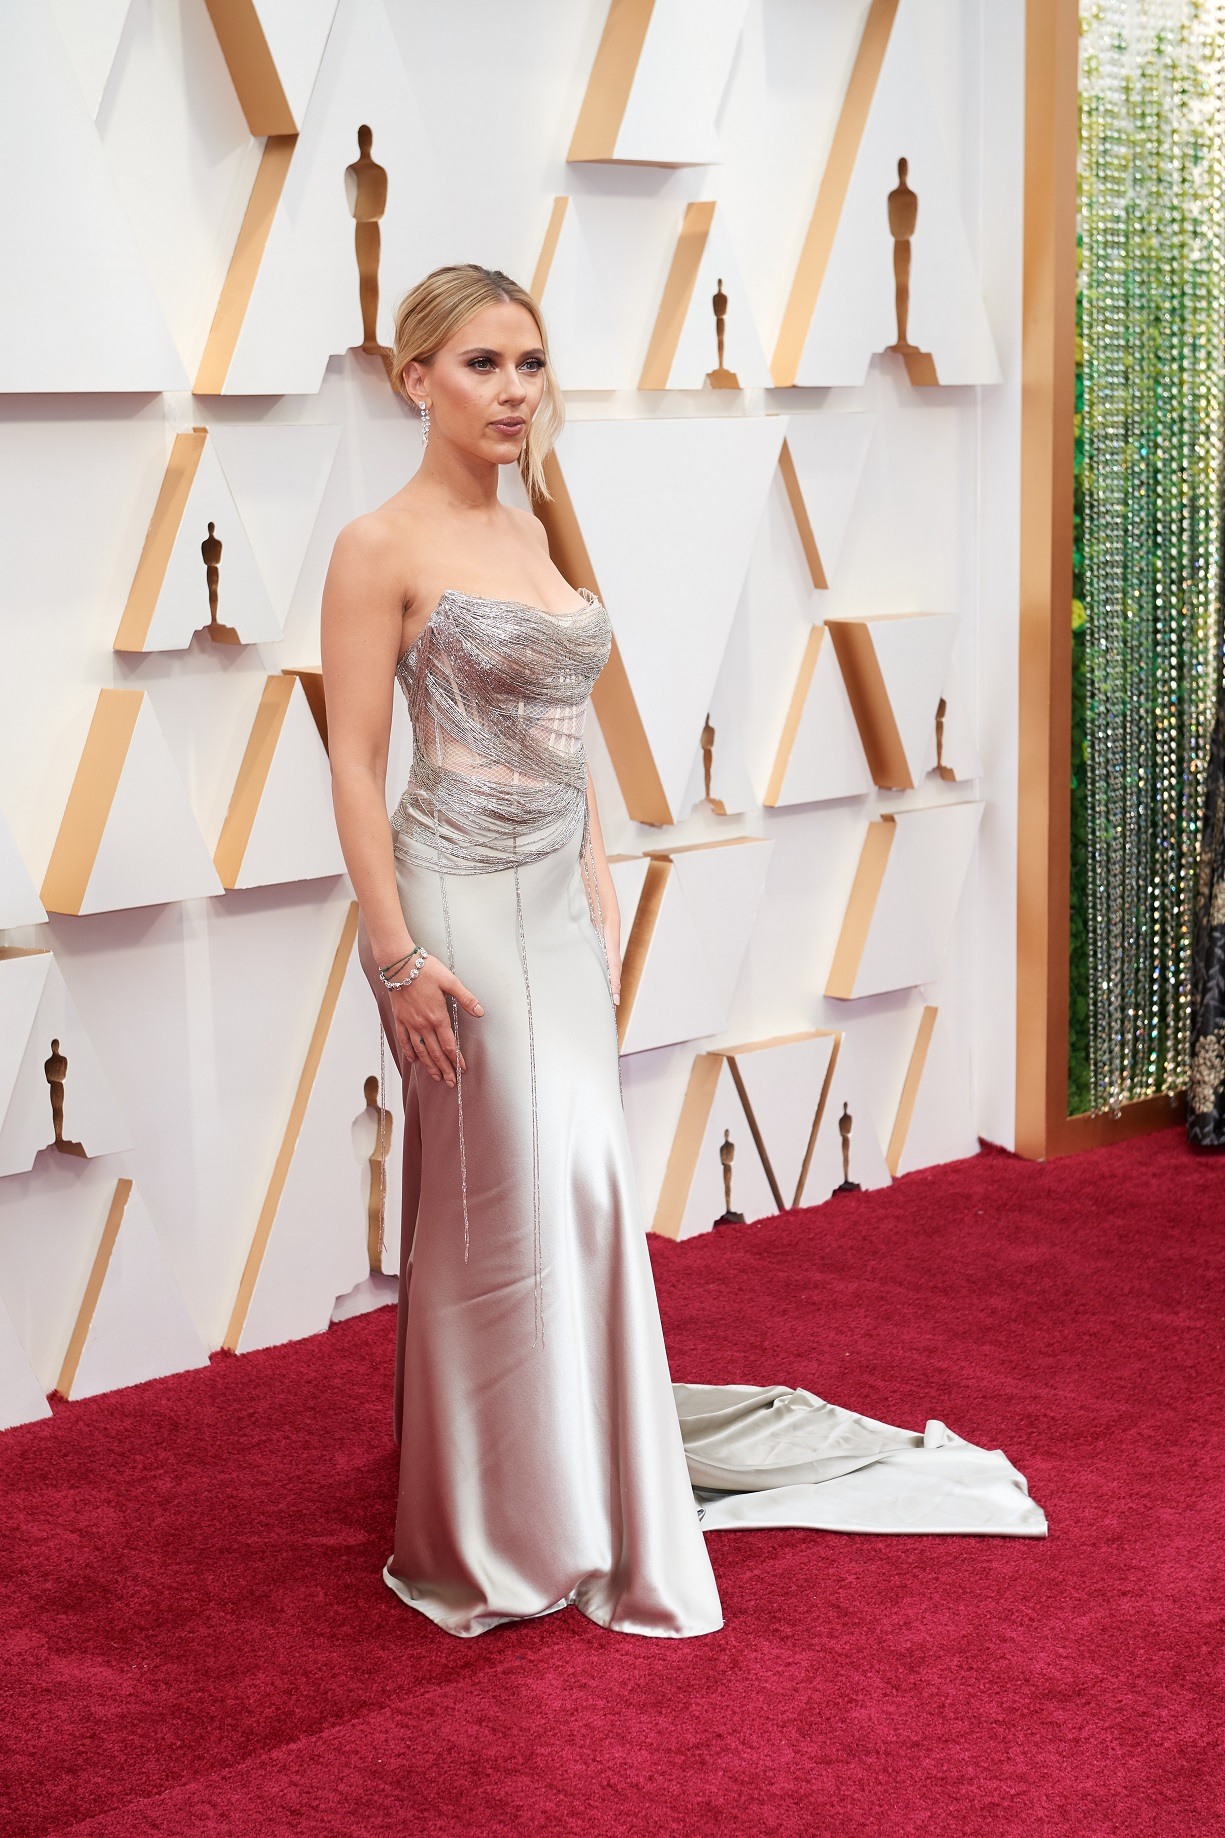 Oscars 2020: Best Dressed Stars